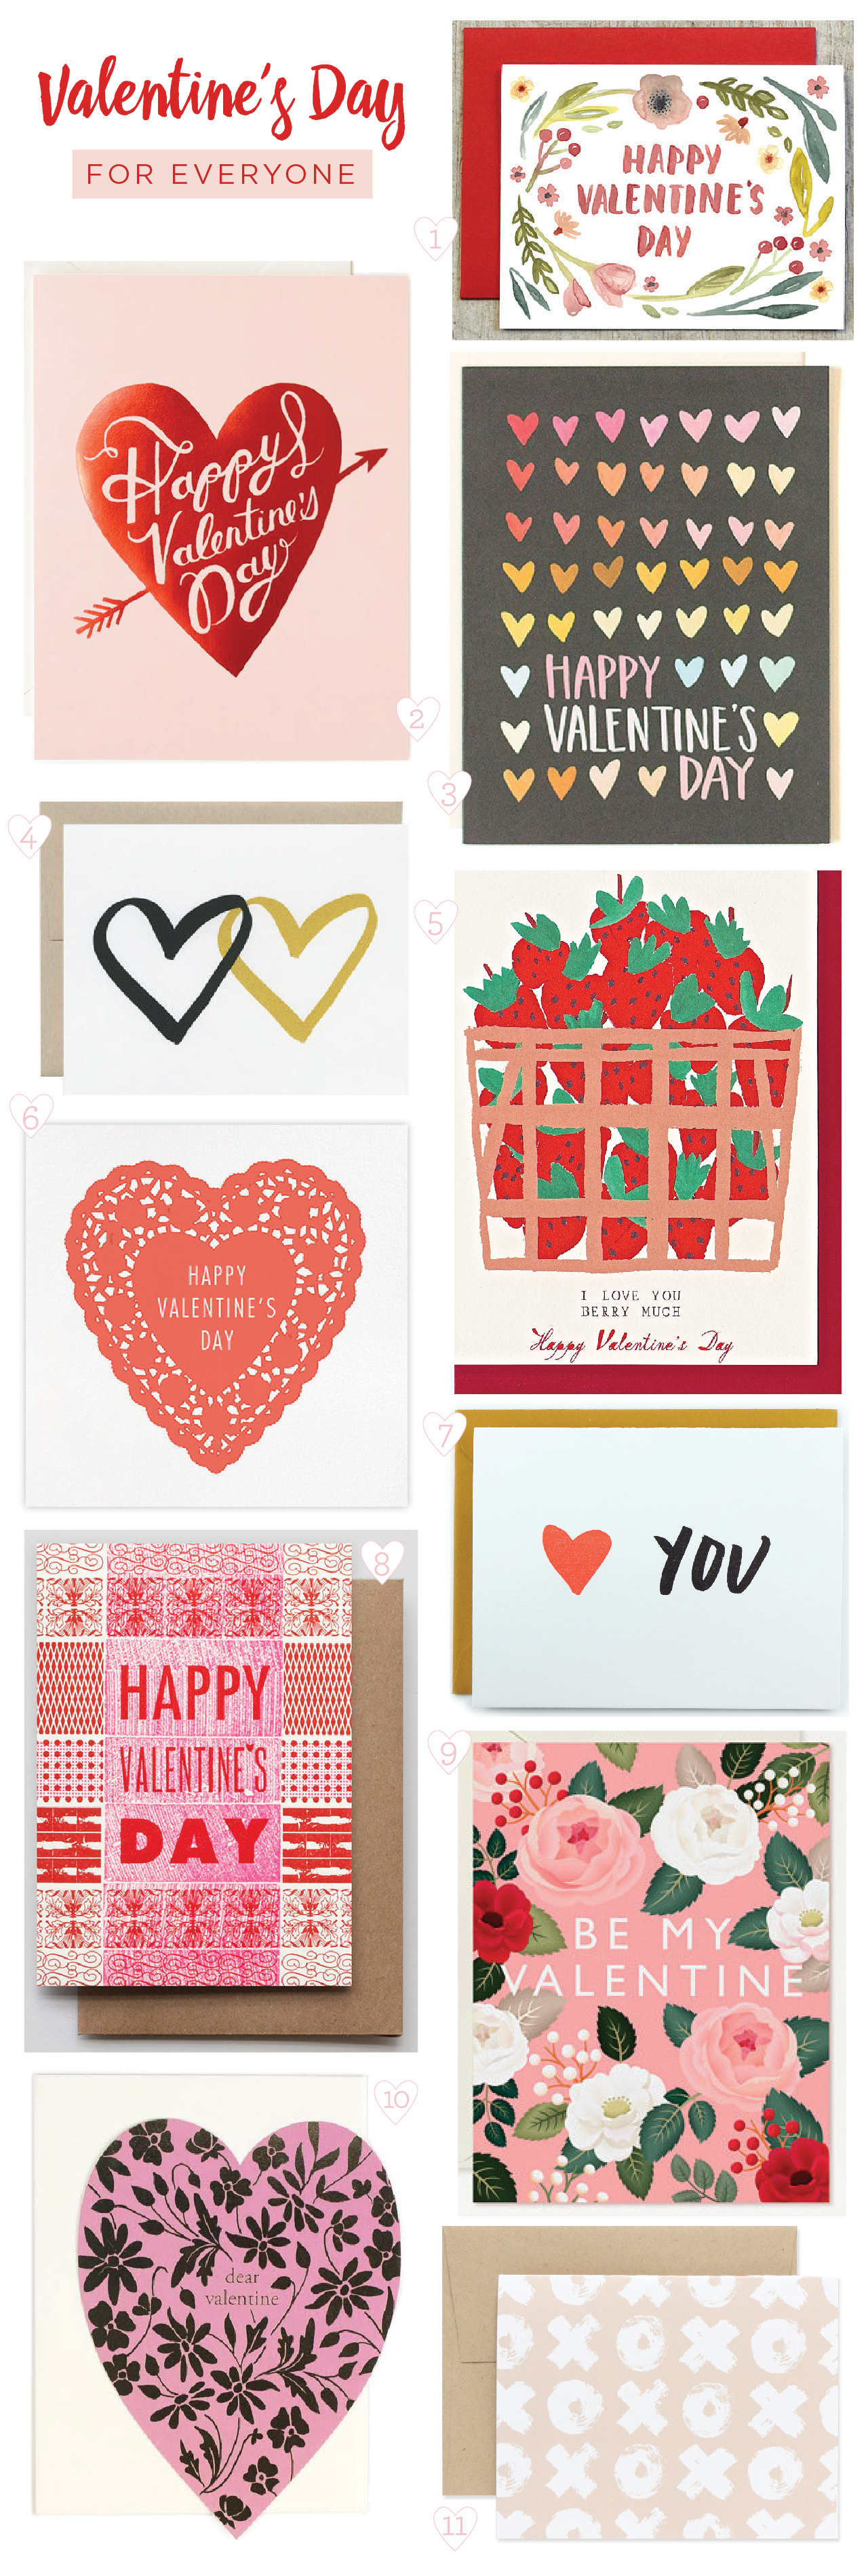 Seasonal Stationery: Valentine's Day Cards